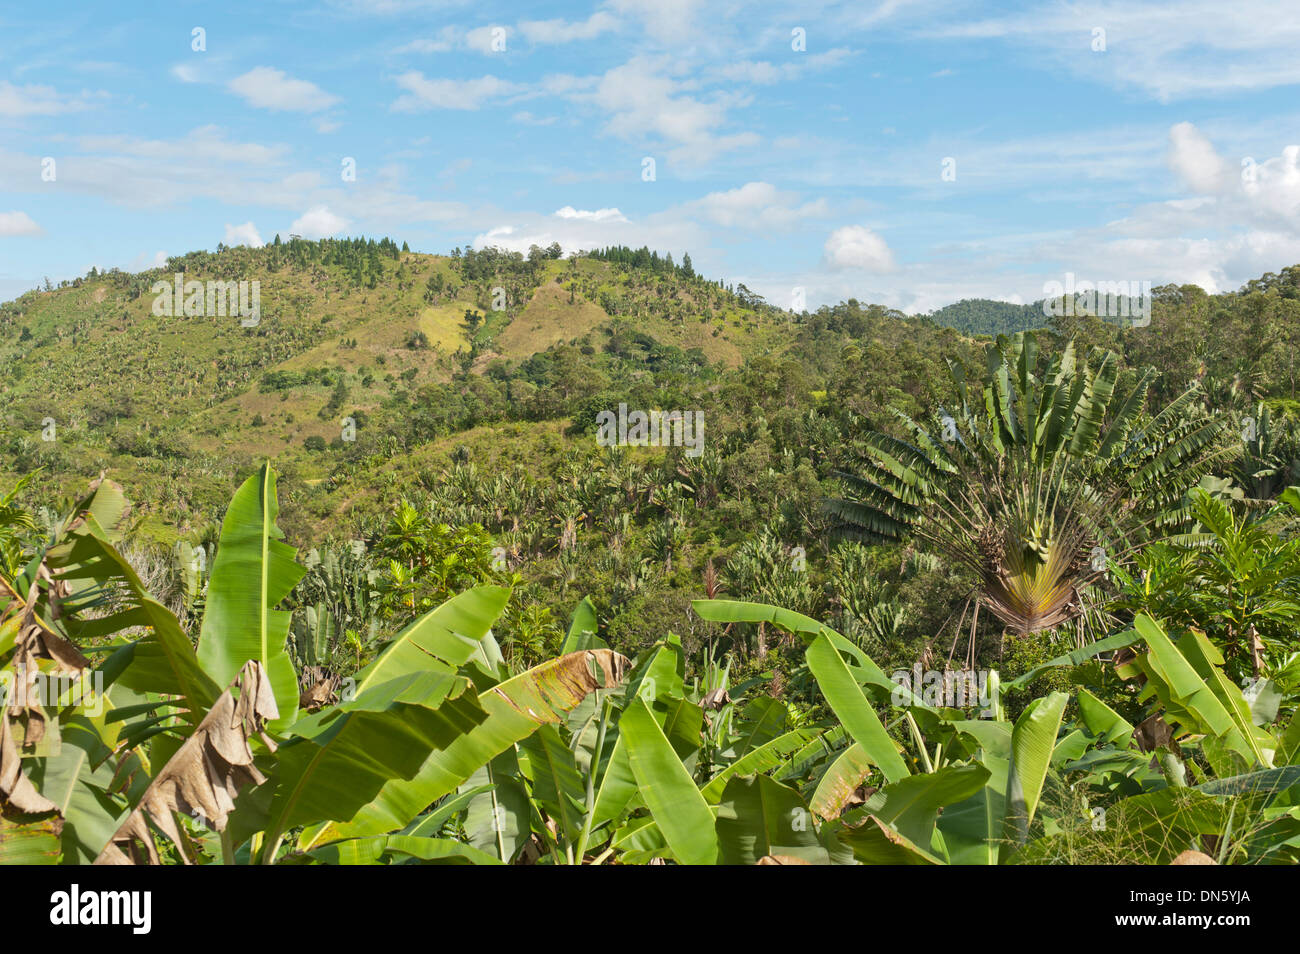 Forest of Traveller's Trees or Traveller's Palms (Ravenala madagascariensis), in their natural habitat near Manakara, Madagascar - Stock Image